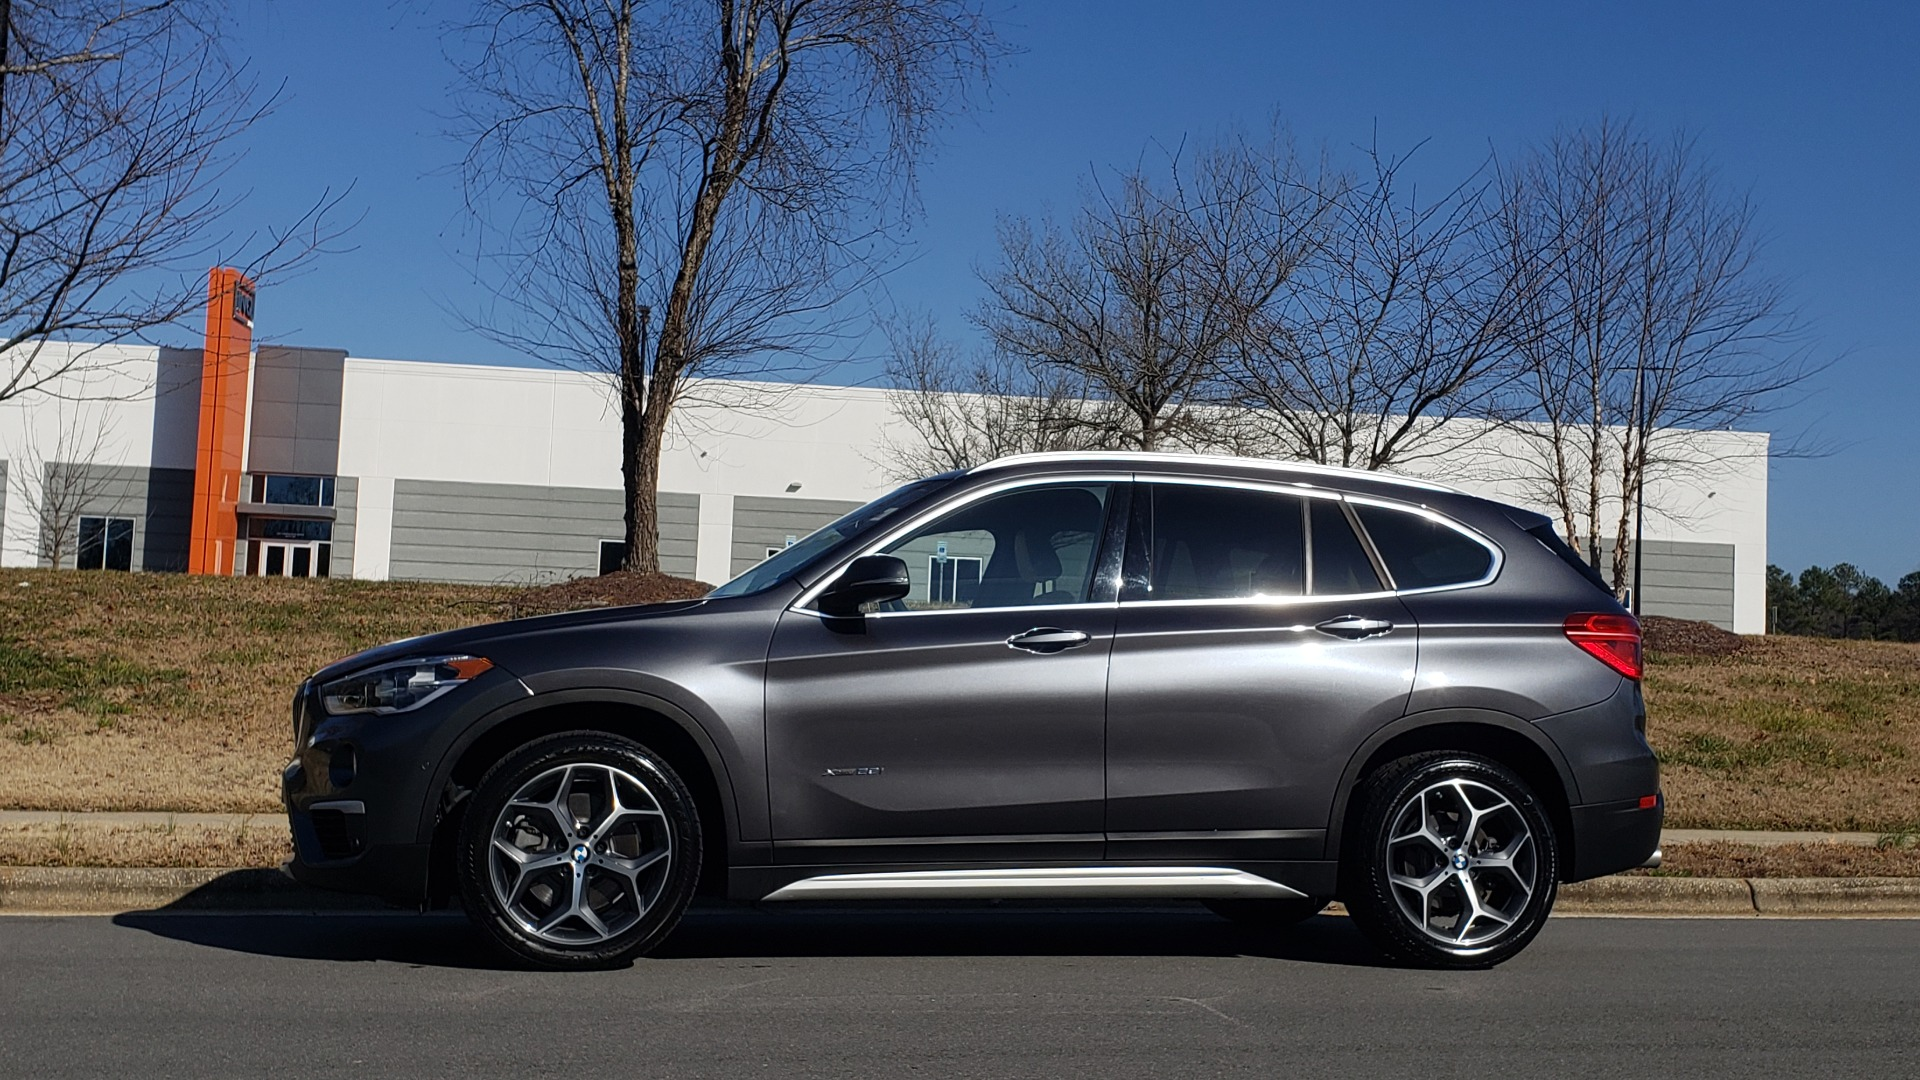 Used 2017 BMW X1 XDRIVE28I / PREM / TECH / DRVR ASST PLUS / COLD WTHR / REARVIEW for sale $26,995 at Formula Imports in Charlotte NC 28227 2